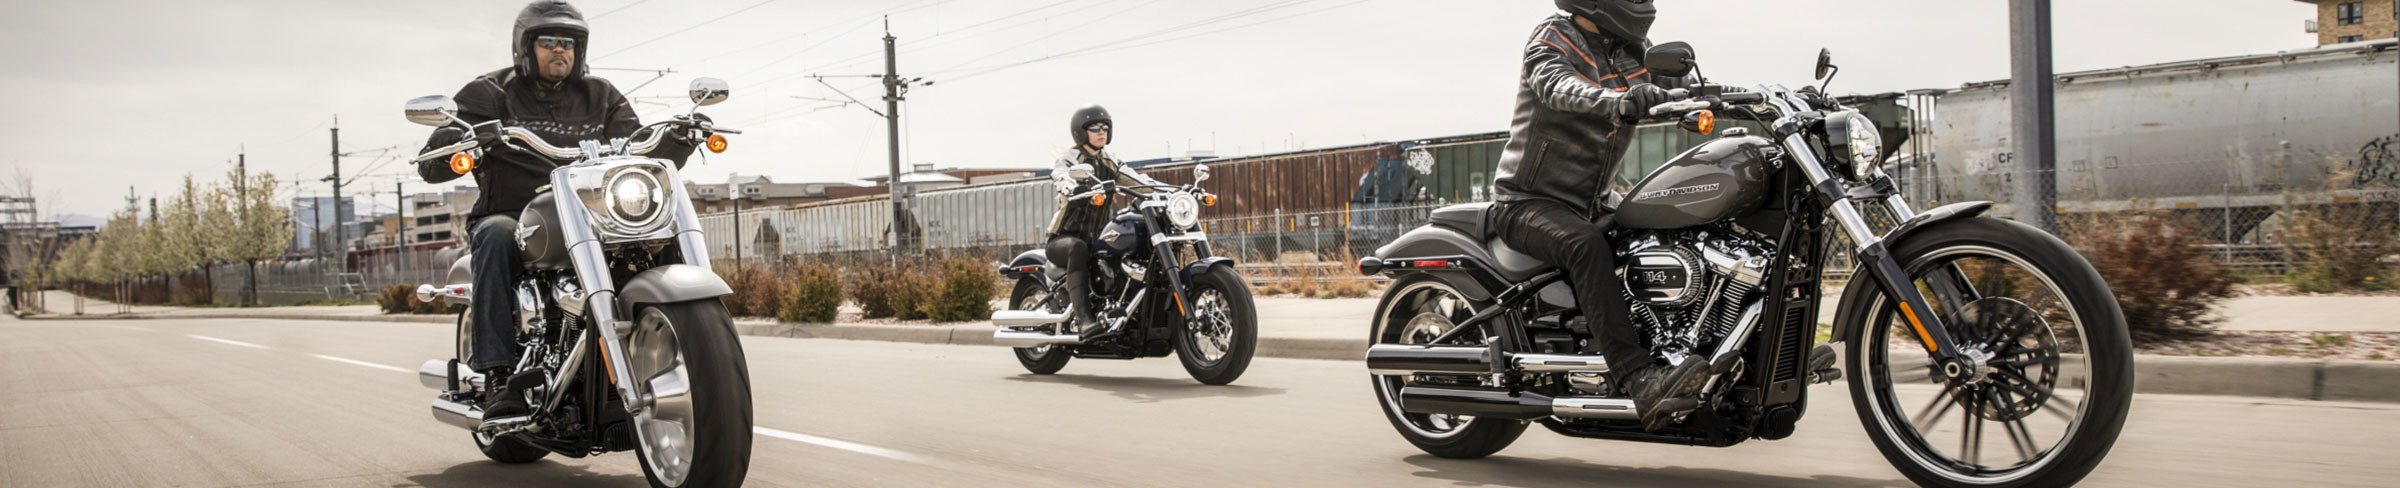 Book a Motorcycle Test Ride | Gail's Harley Davidson® in KC